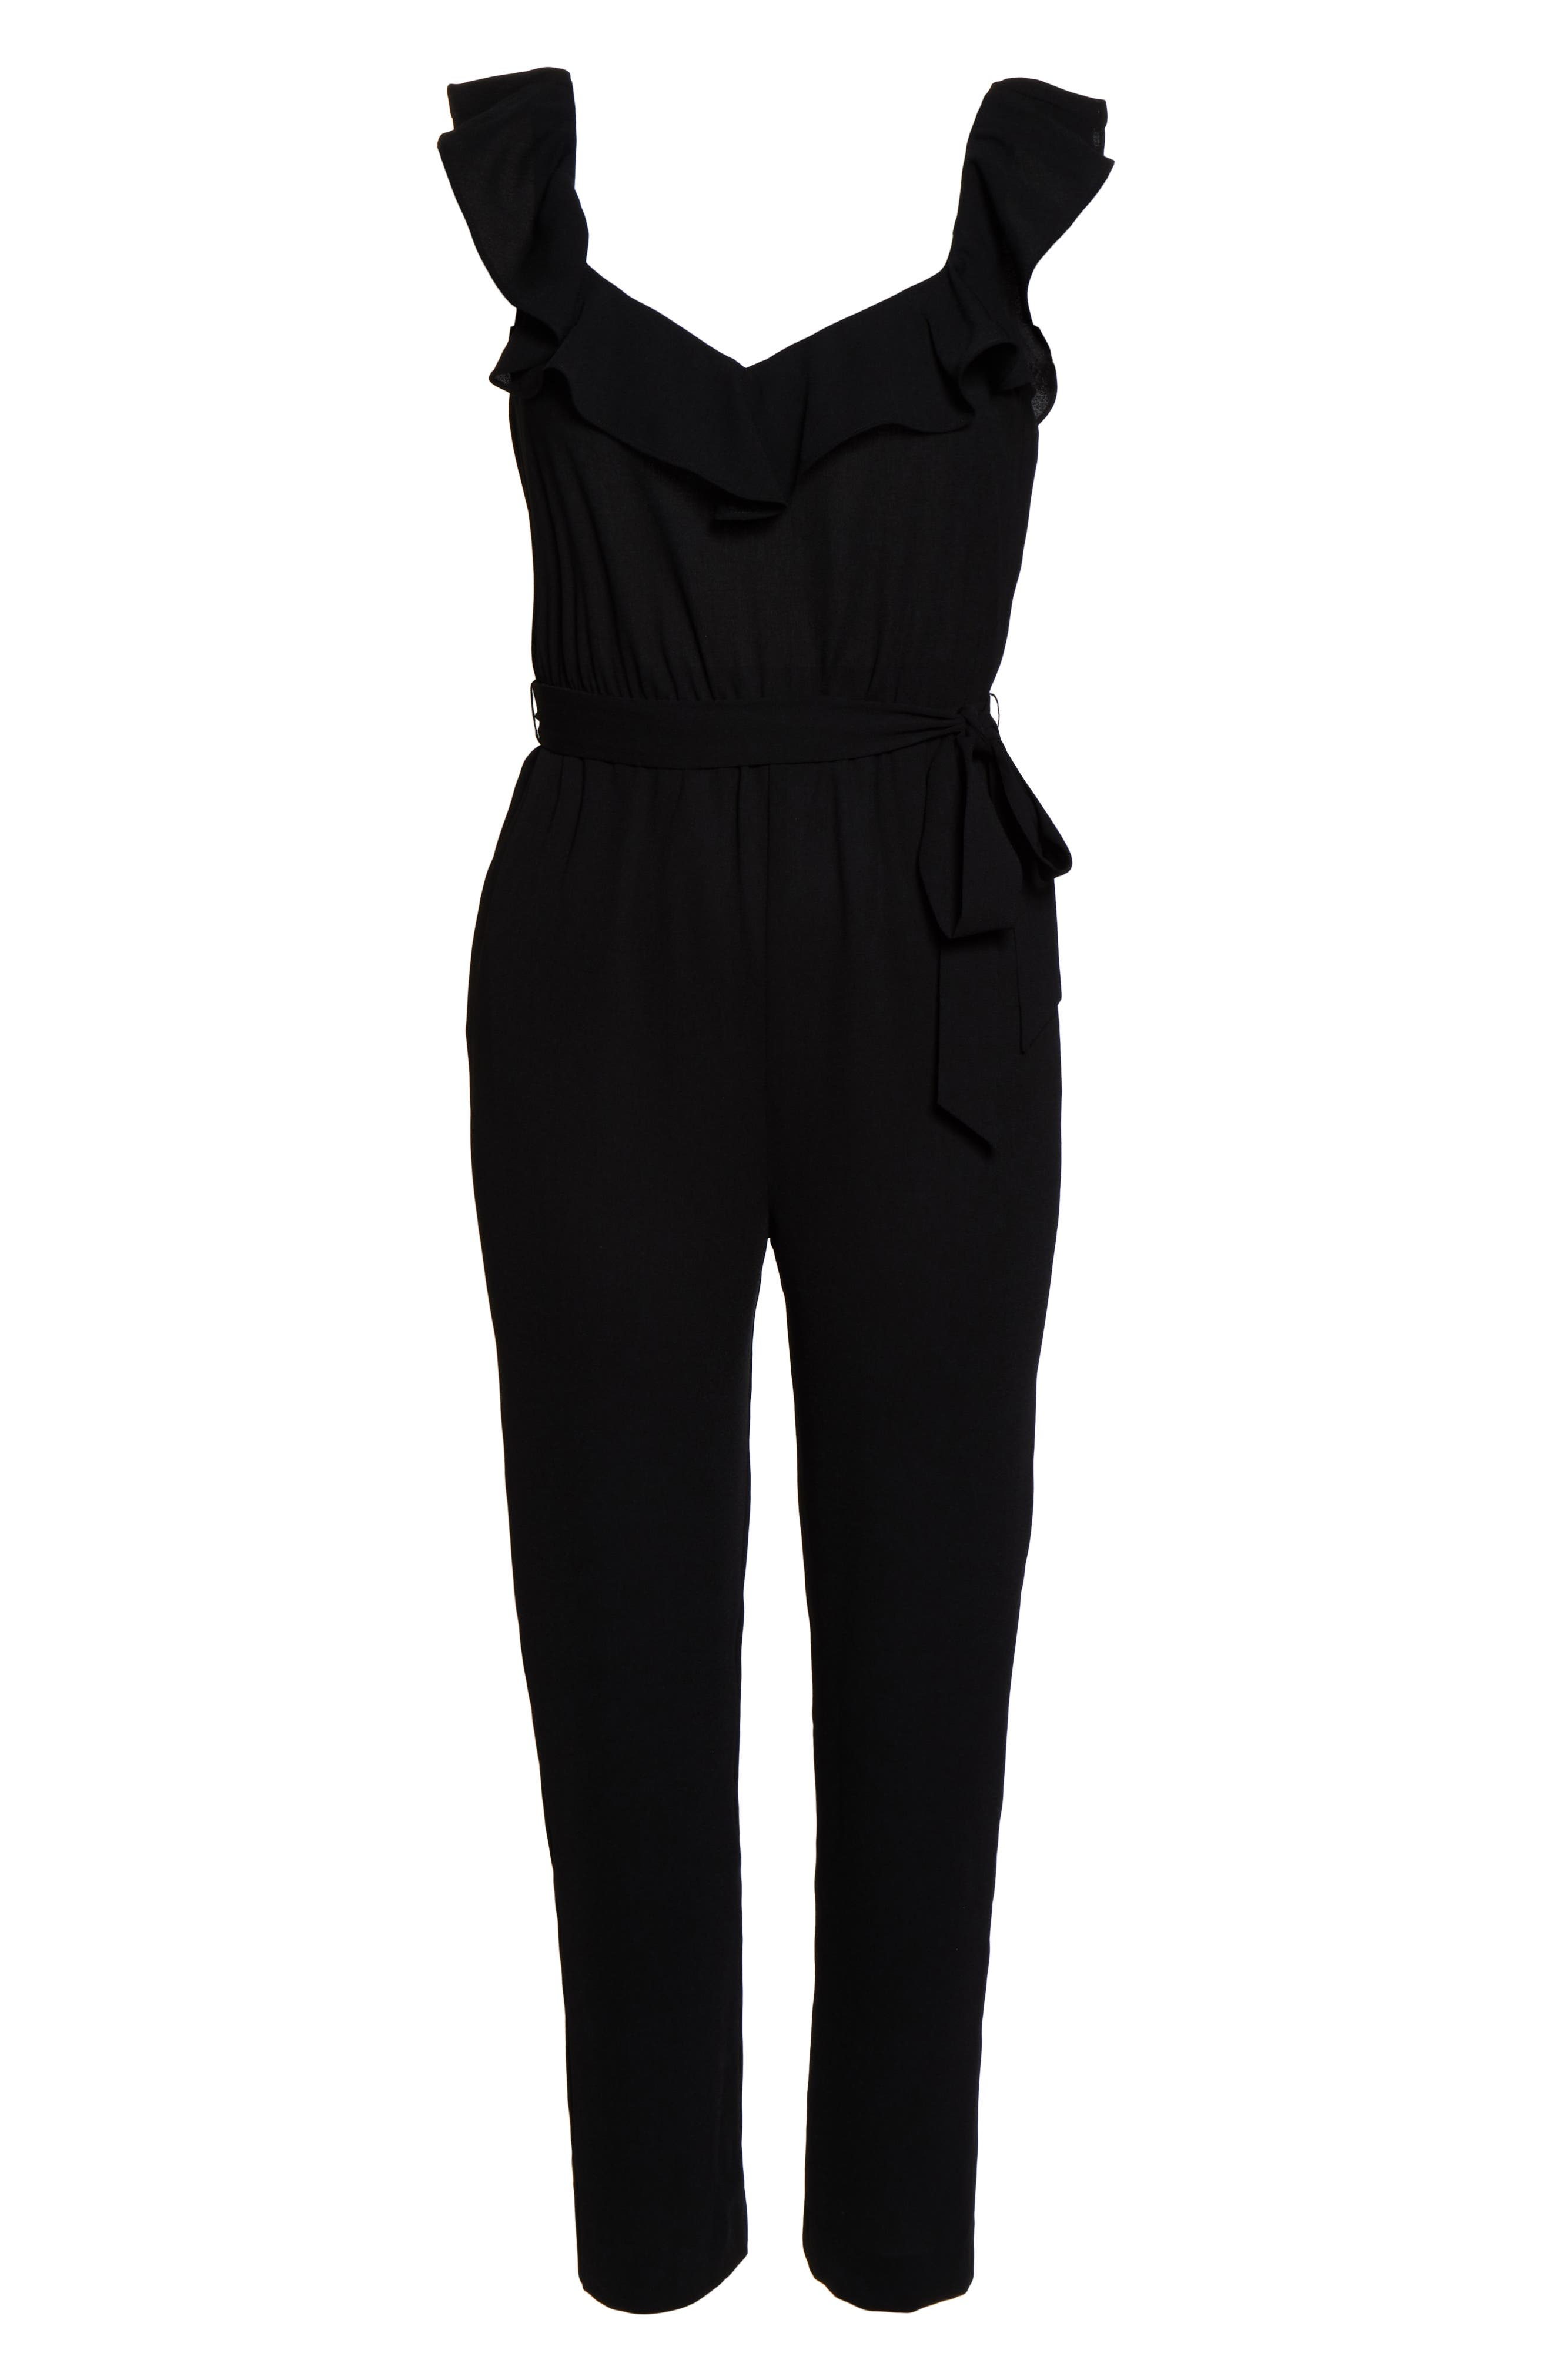 ALI & JAY, Say You Will Stay Crepe Jumpsuit, Alternate thumbnail 7, color, BLACK